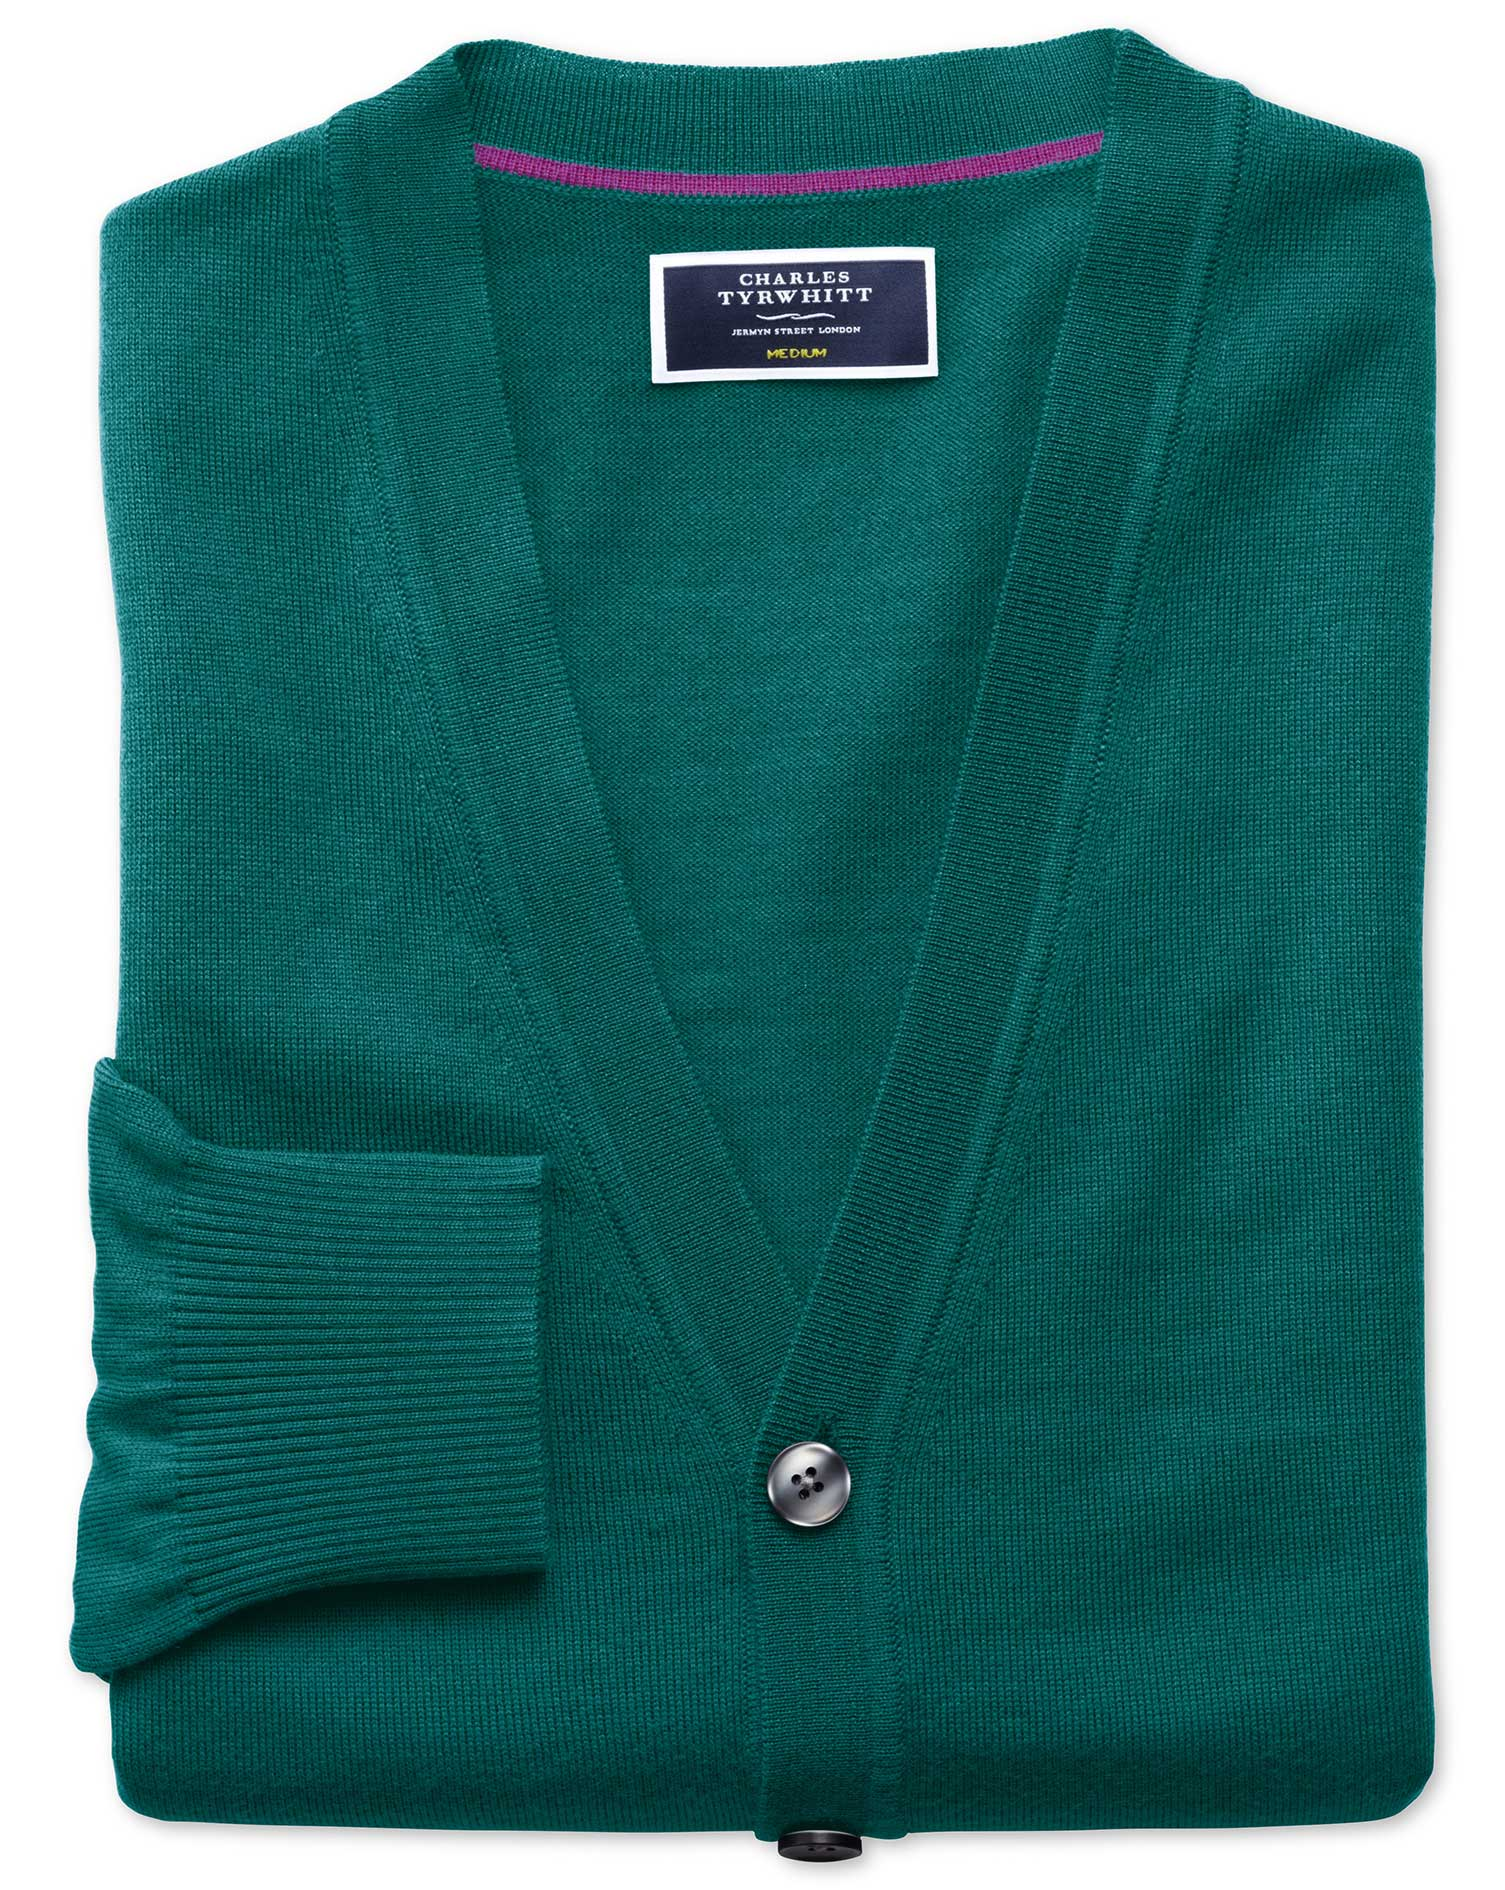 Teal Merino Wool Cardigan Size Large by Charles Tyrwhitt